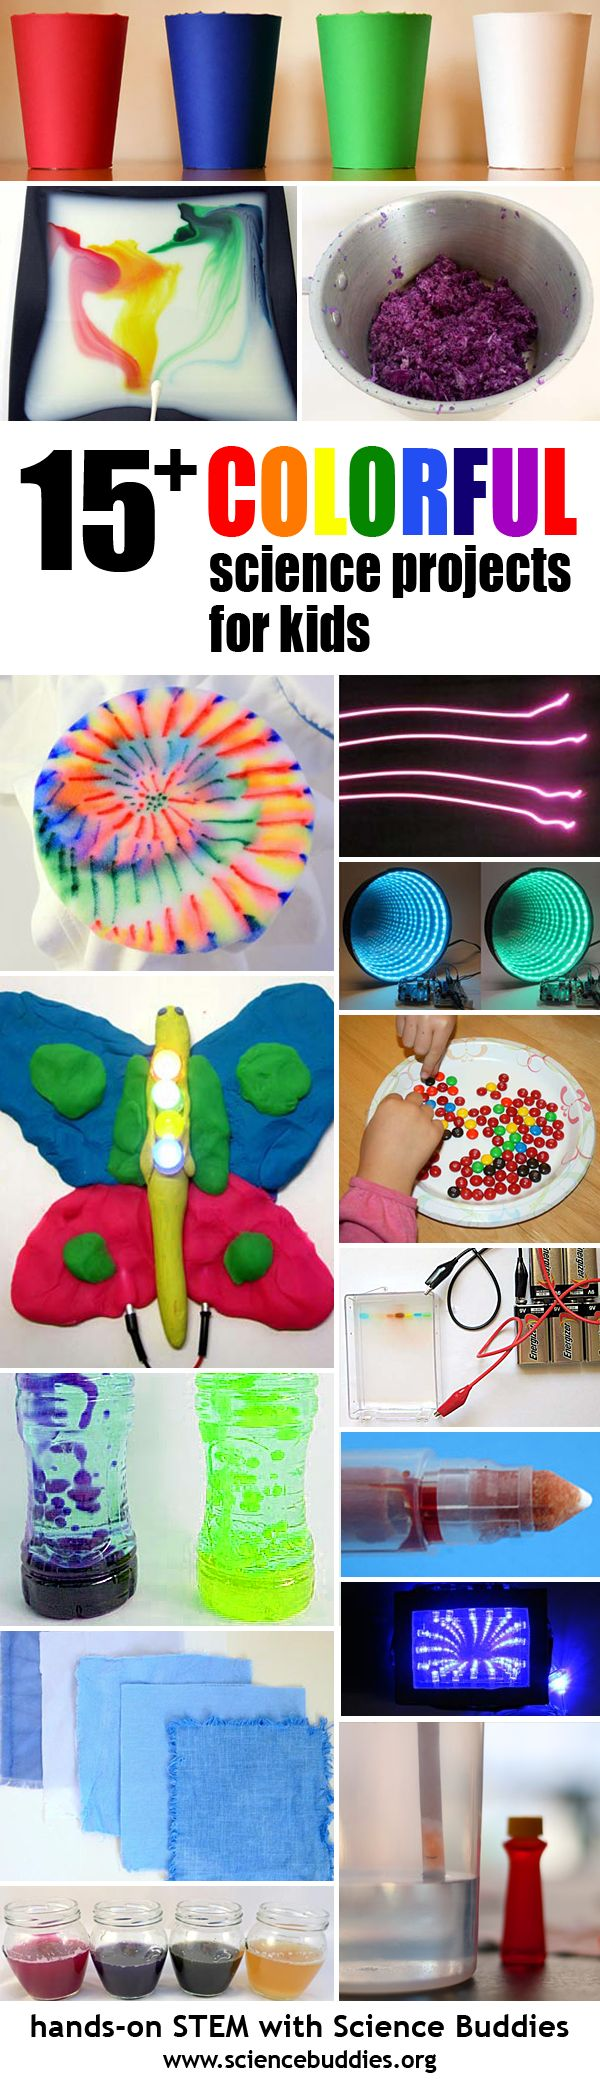 best images about k science project ideas explore colorful science hands on stem activities projects like these can